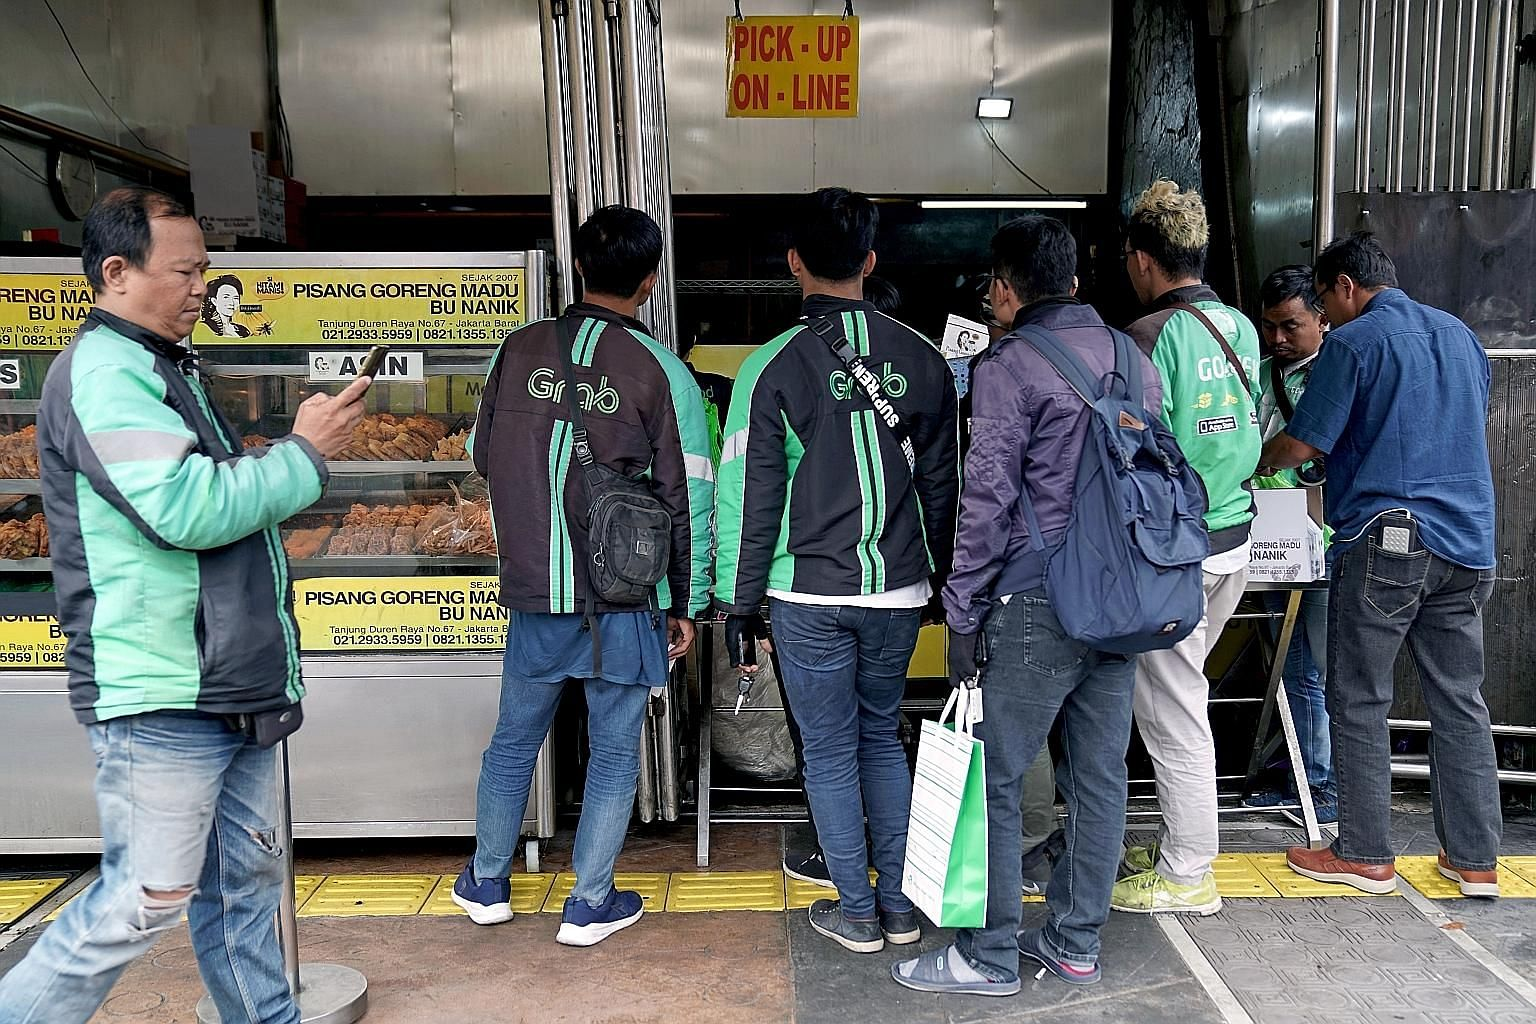 GrabFood drivers queueing up to collect orders at an eatery in Jakarta in July. Grab and Gojek are the top two start-up brands in South-east Asia, and they compete in areas such as financial services, e-commerce, ride hailing and food delivery. PHOTO